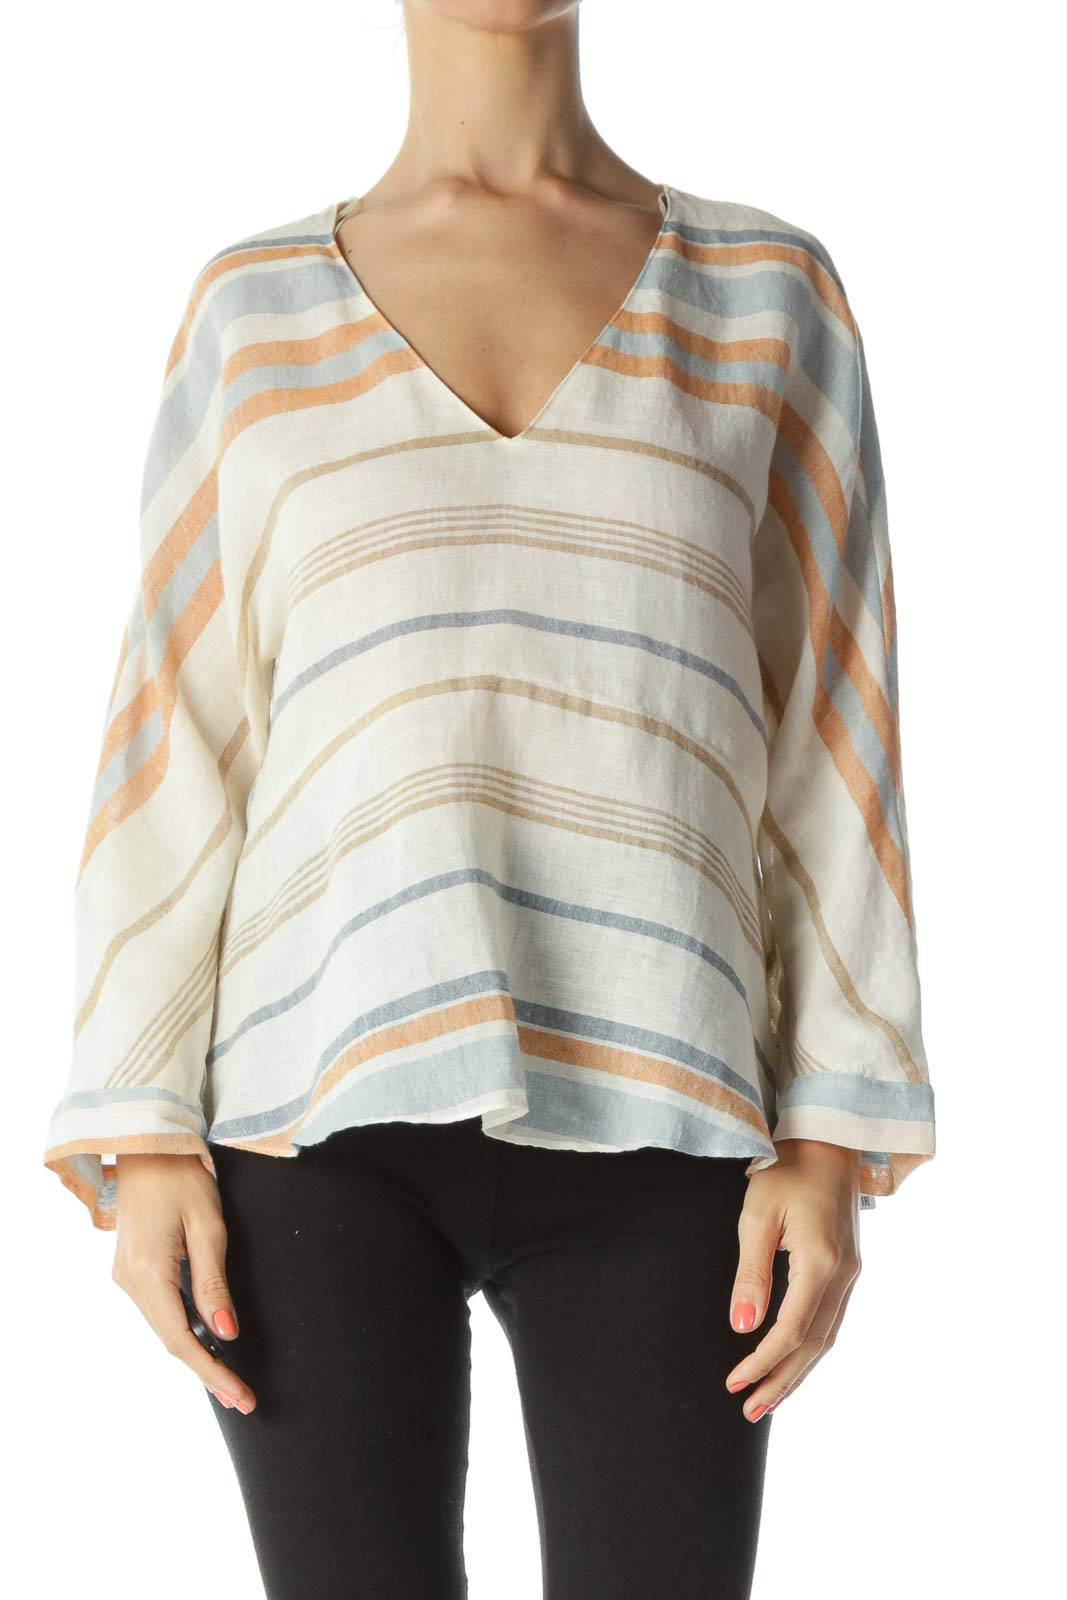 Blue/Cream/Orange Linen and Cotton Striped See-Through Top